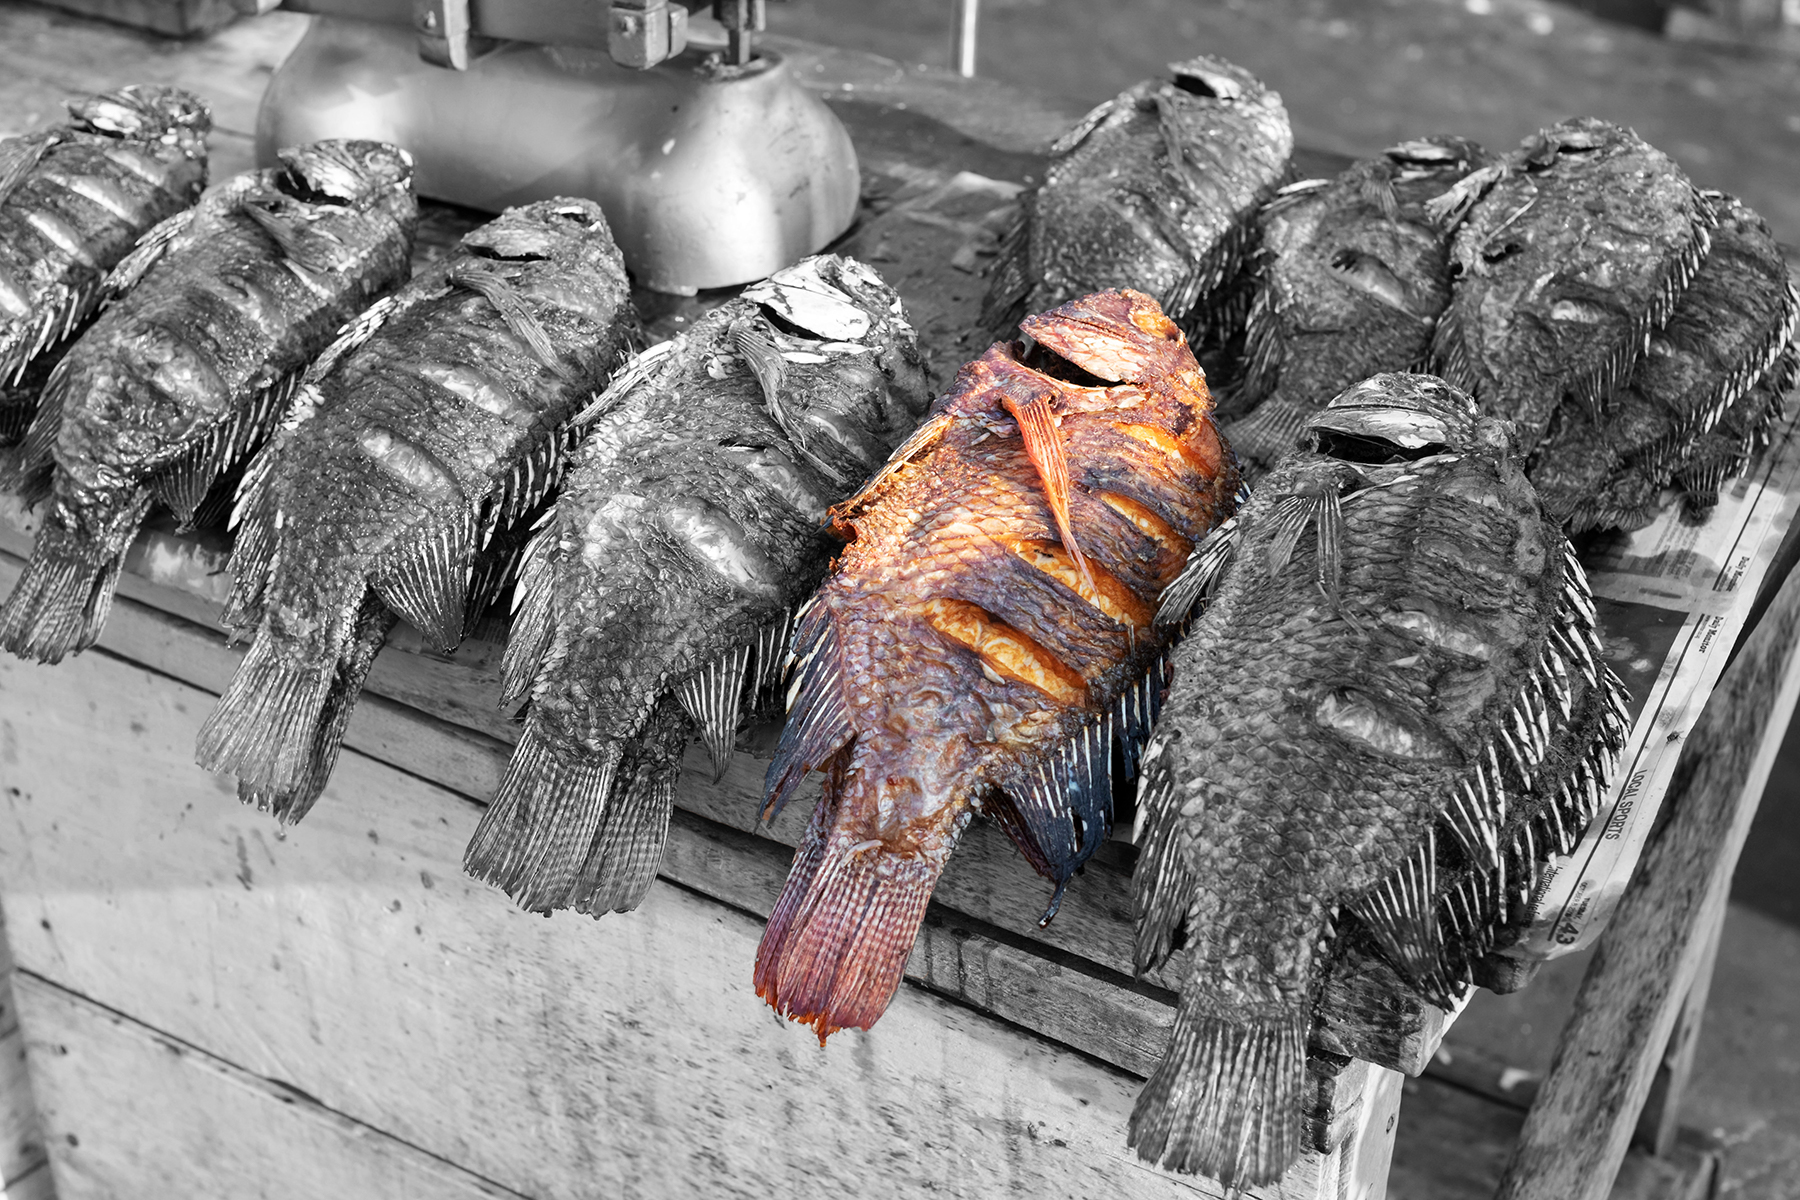 Image shows recently a collection of recently caught fresh tilapia laying on their sides on a BBQ